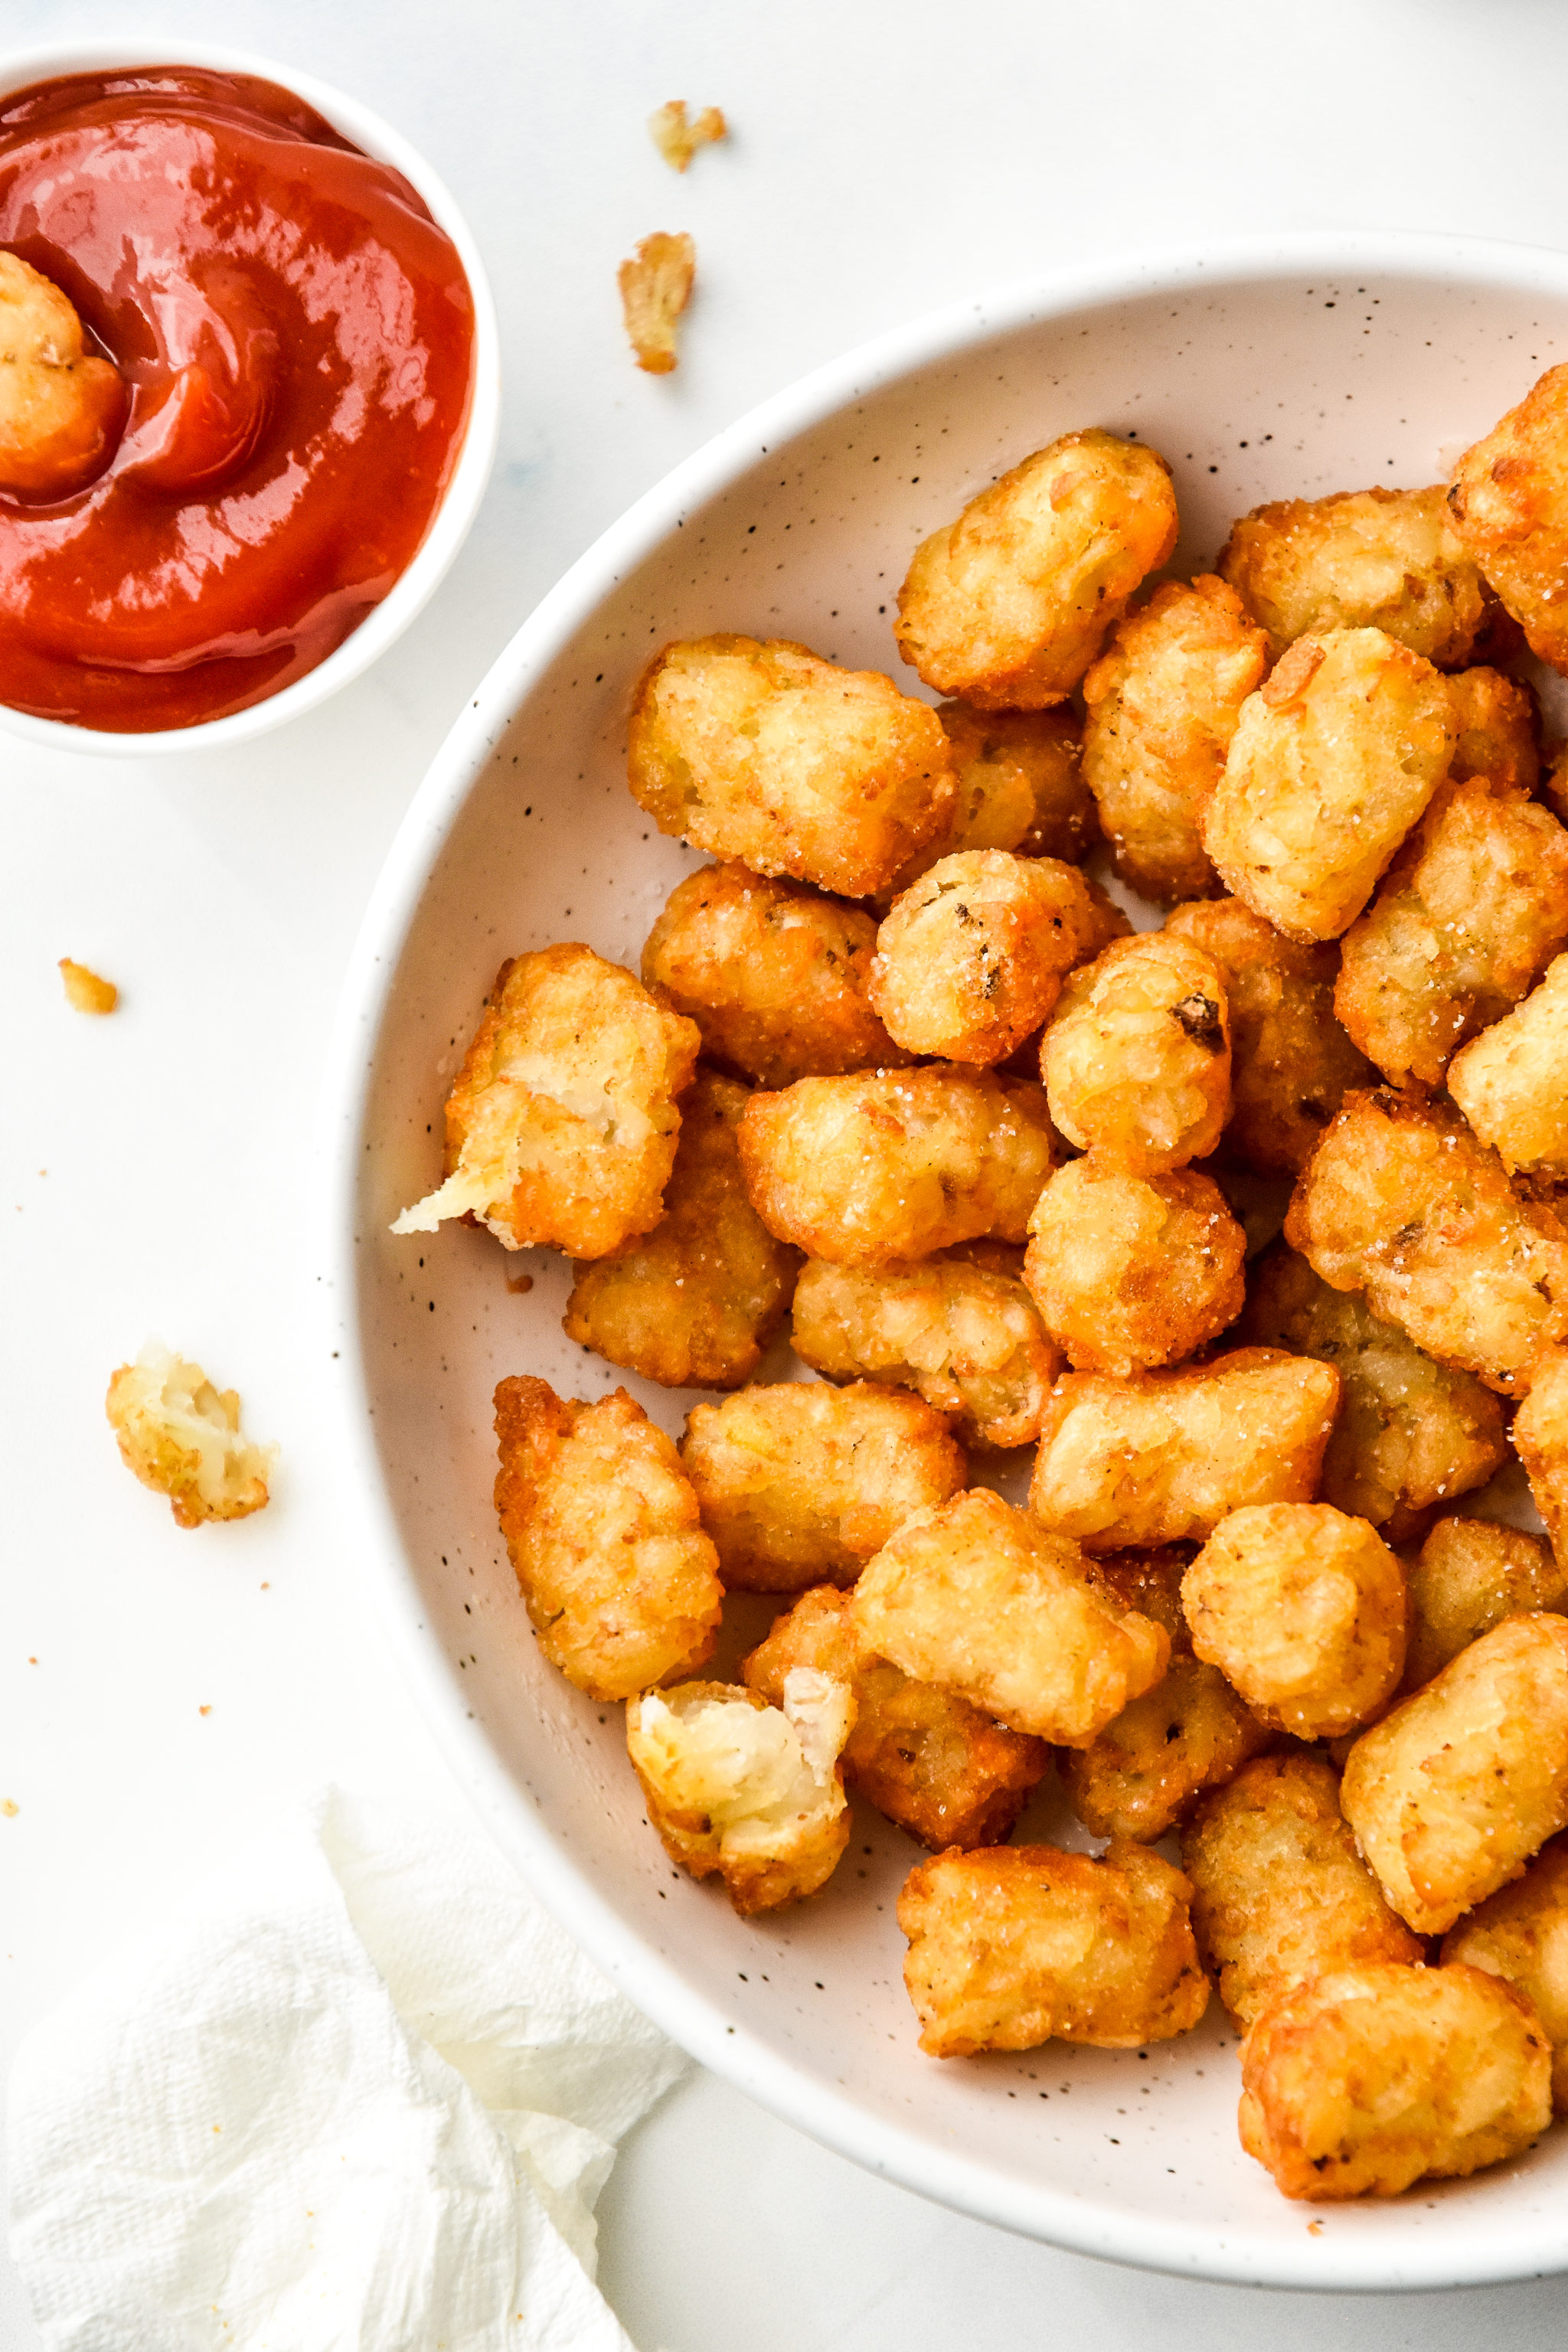 tater tots cooked in an air fryer served with ketchup in a bowl